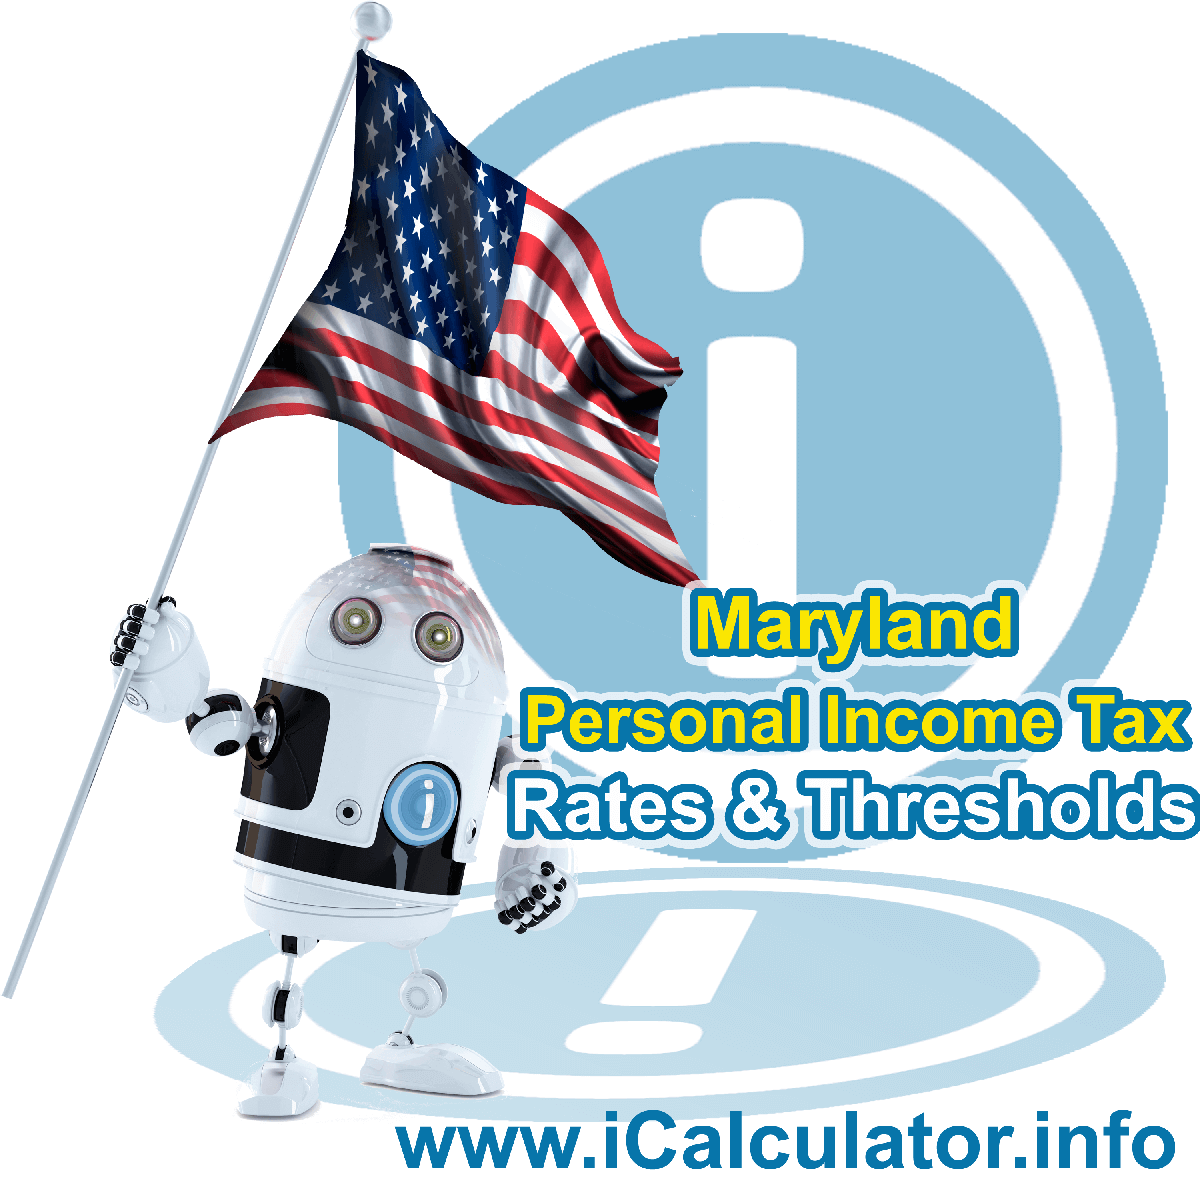 Maryland State Tax Tables 2020. This image displays details of the Maryland State Tax Tables for the 2020 tax return year which is provided in support of the 2020 US Tax Calculator